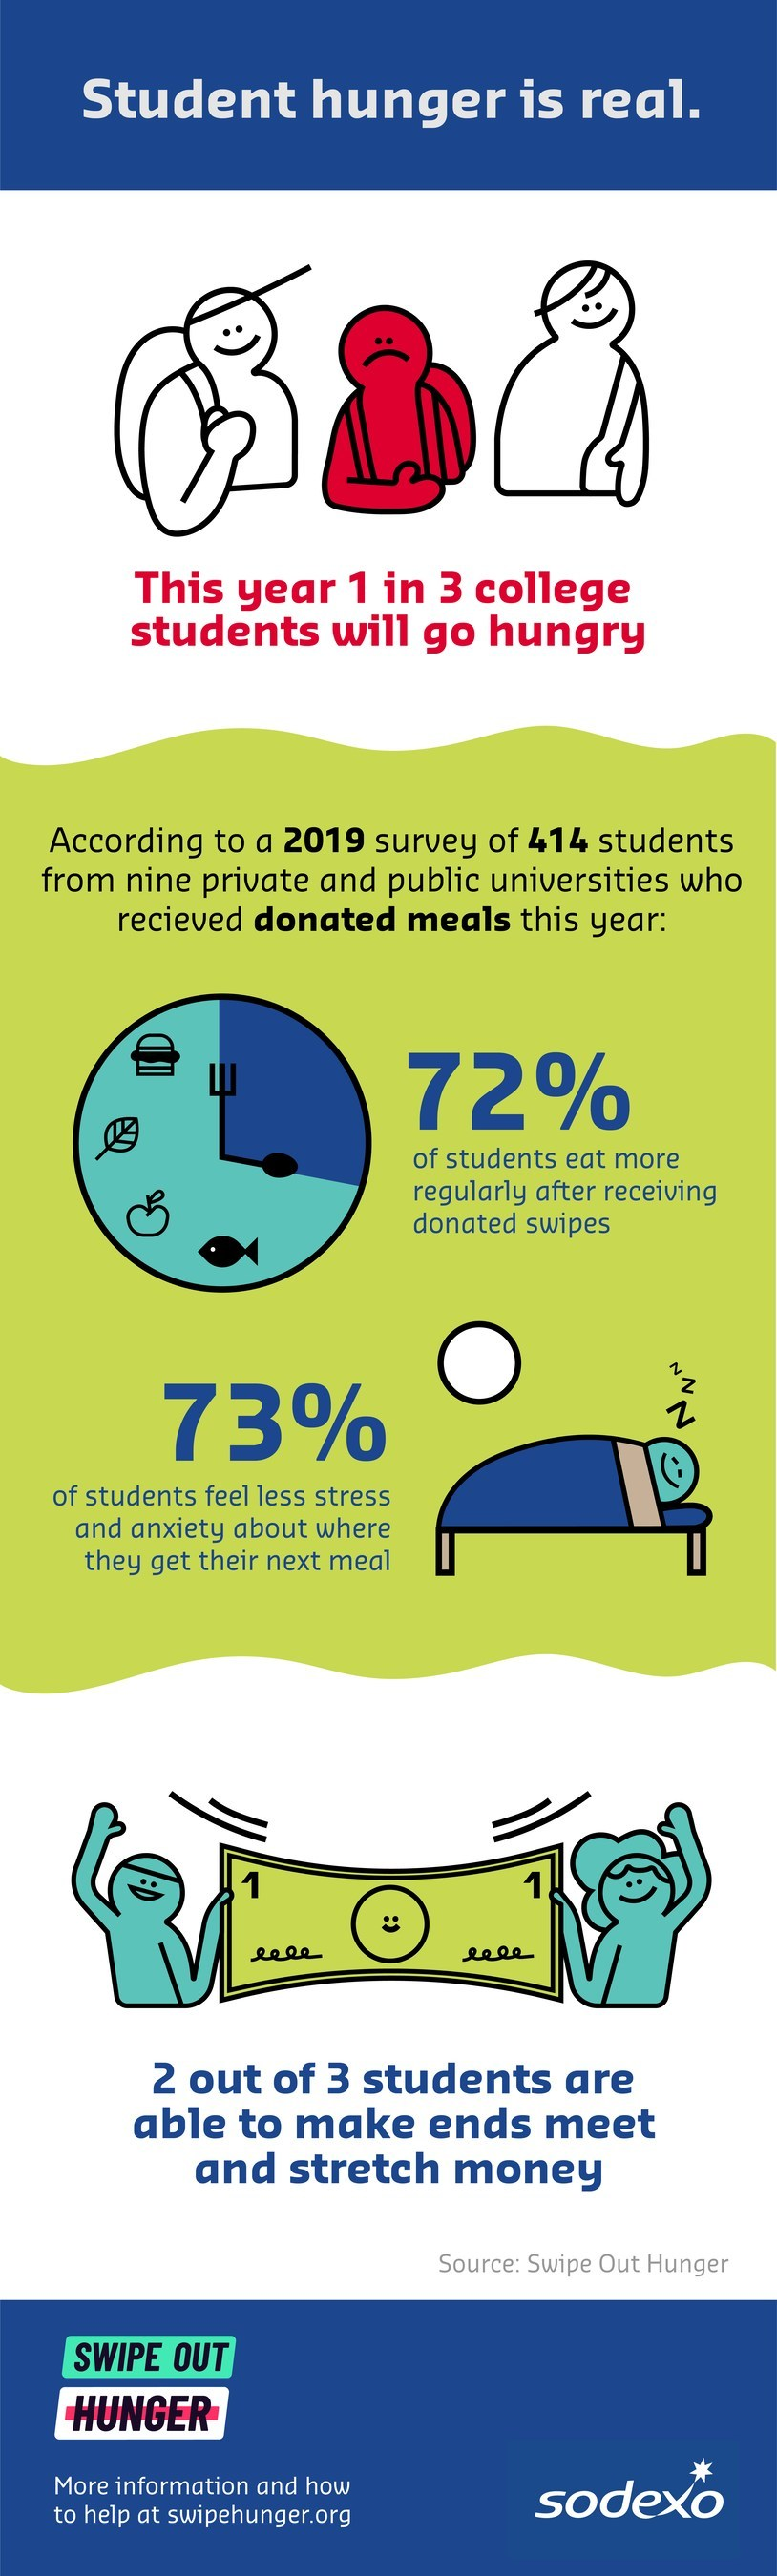 Sodexo and Swipe Out Hunger Take Action to Combat Food Insecurity on College Campuses